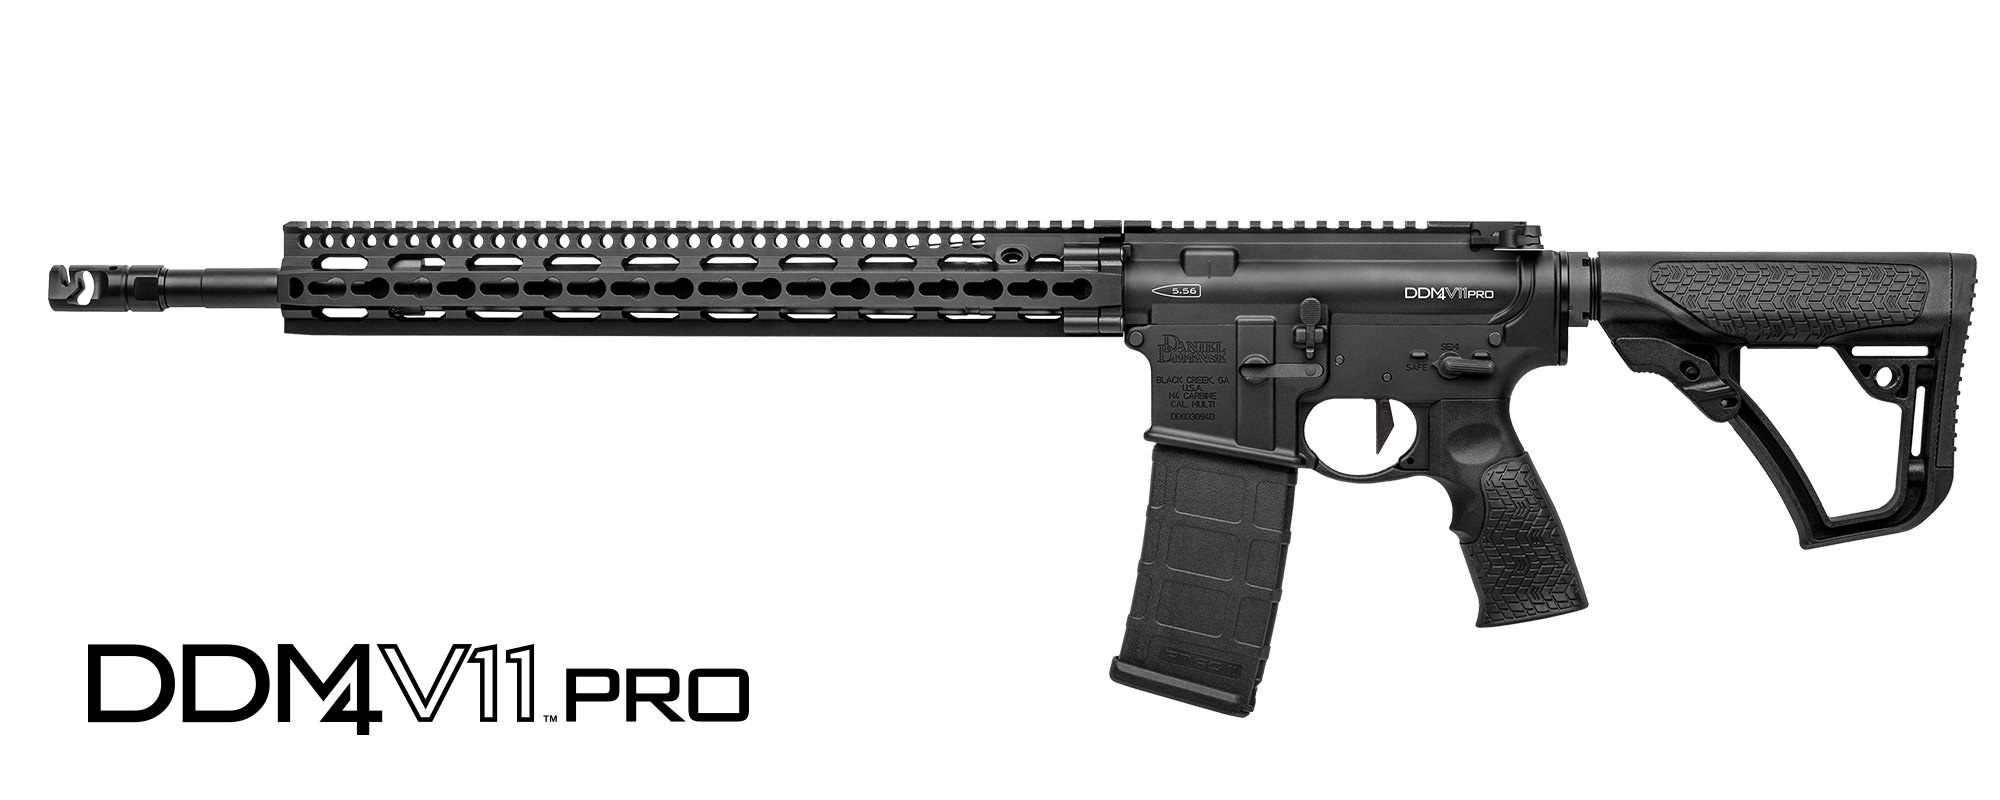 "DANIEL DEFENSE M4 V11-PRO SEMI-AUTO CARBINE, 223 (5.56MM NATO), 18"" BBL, BLACK, NEW"